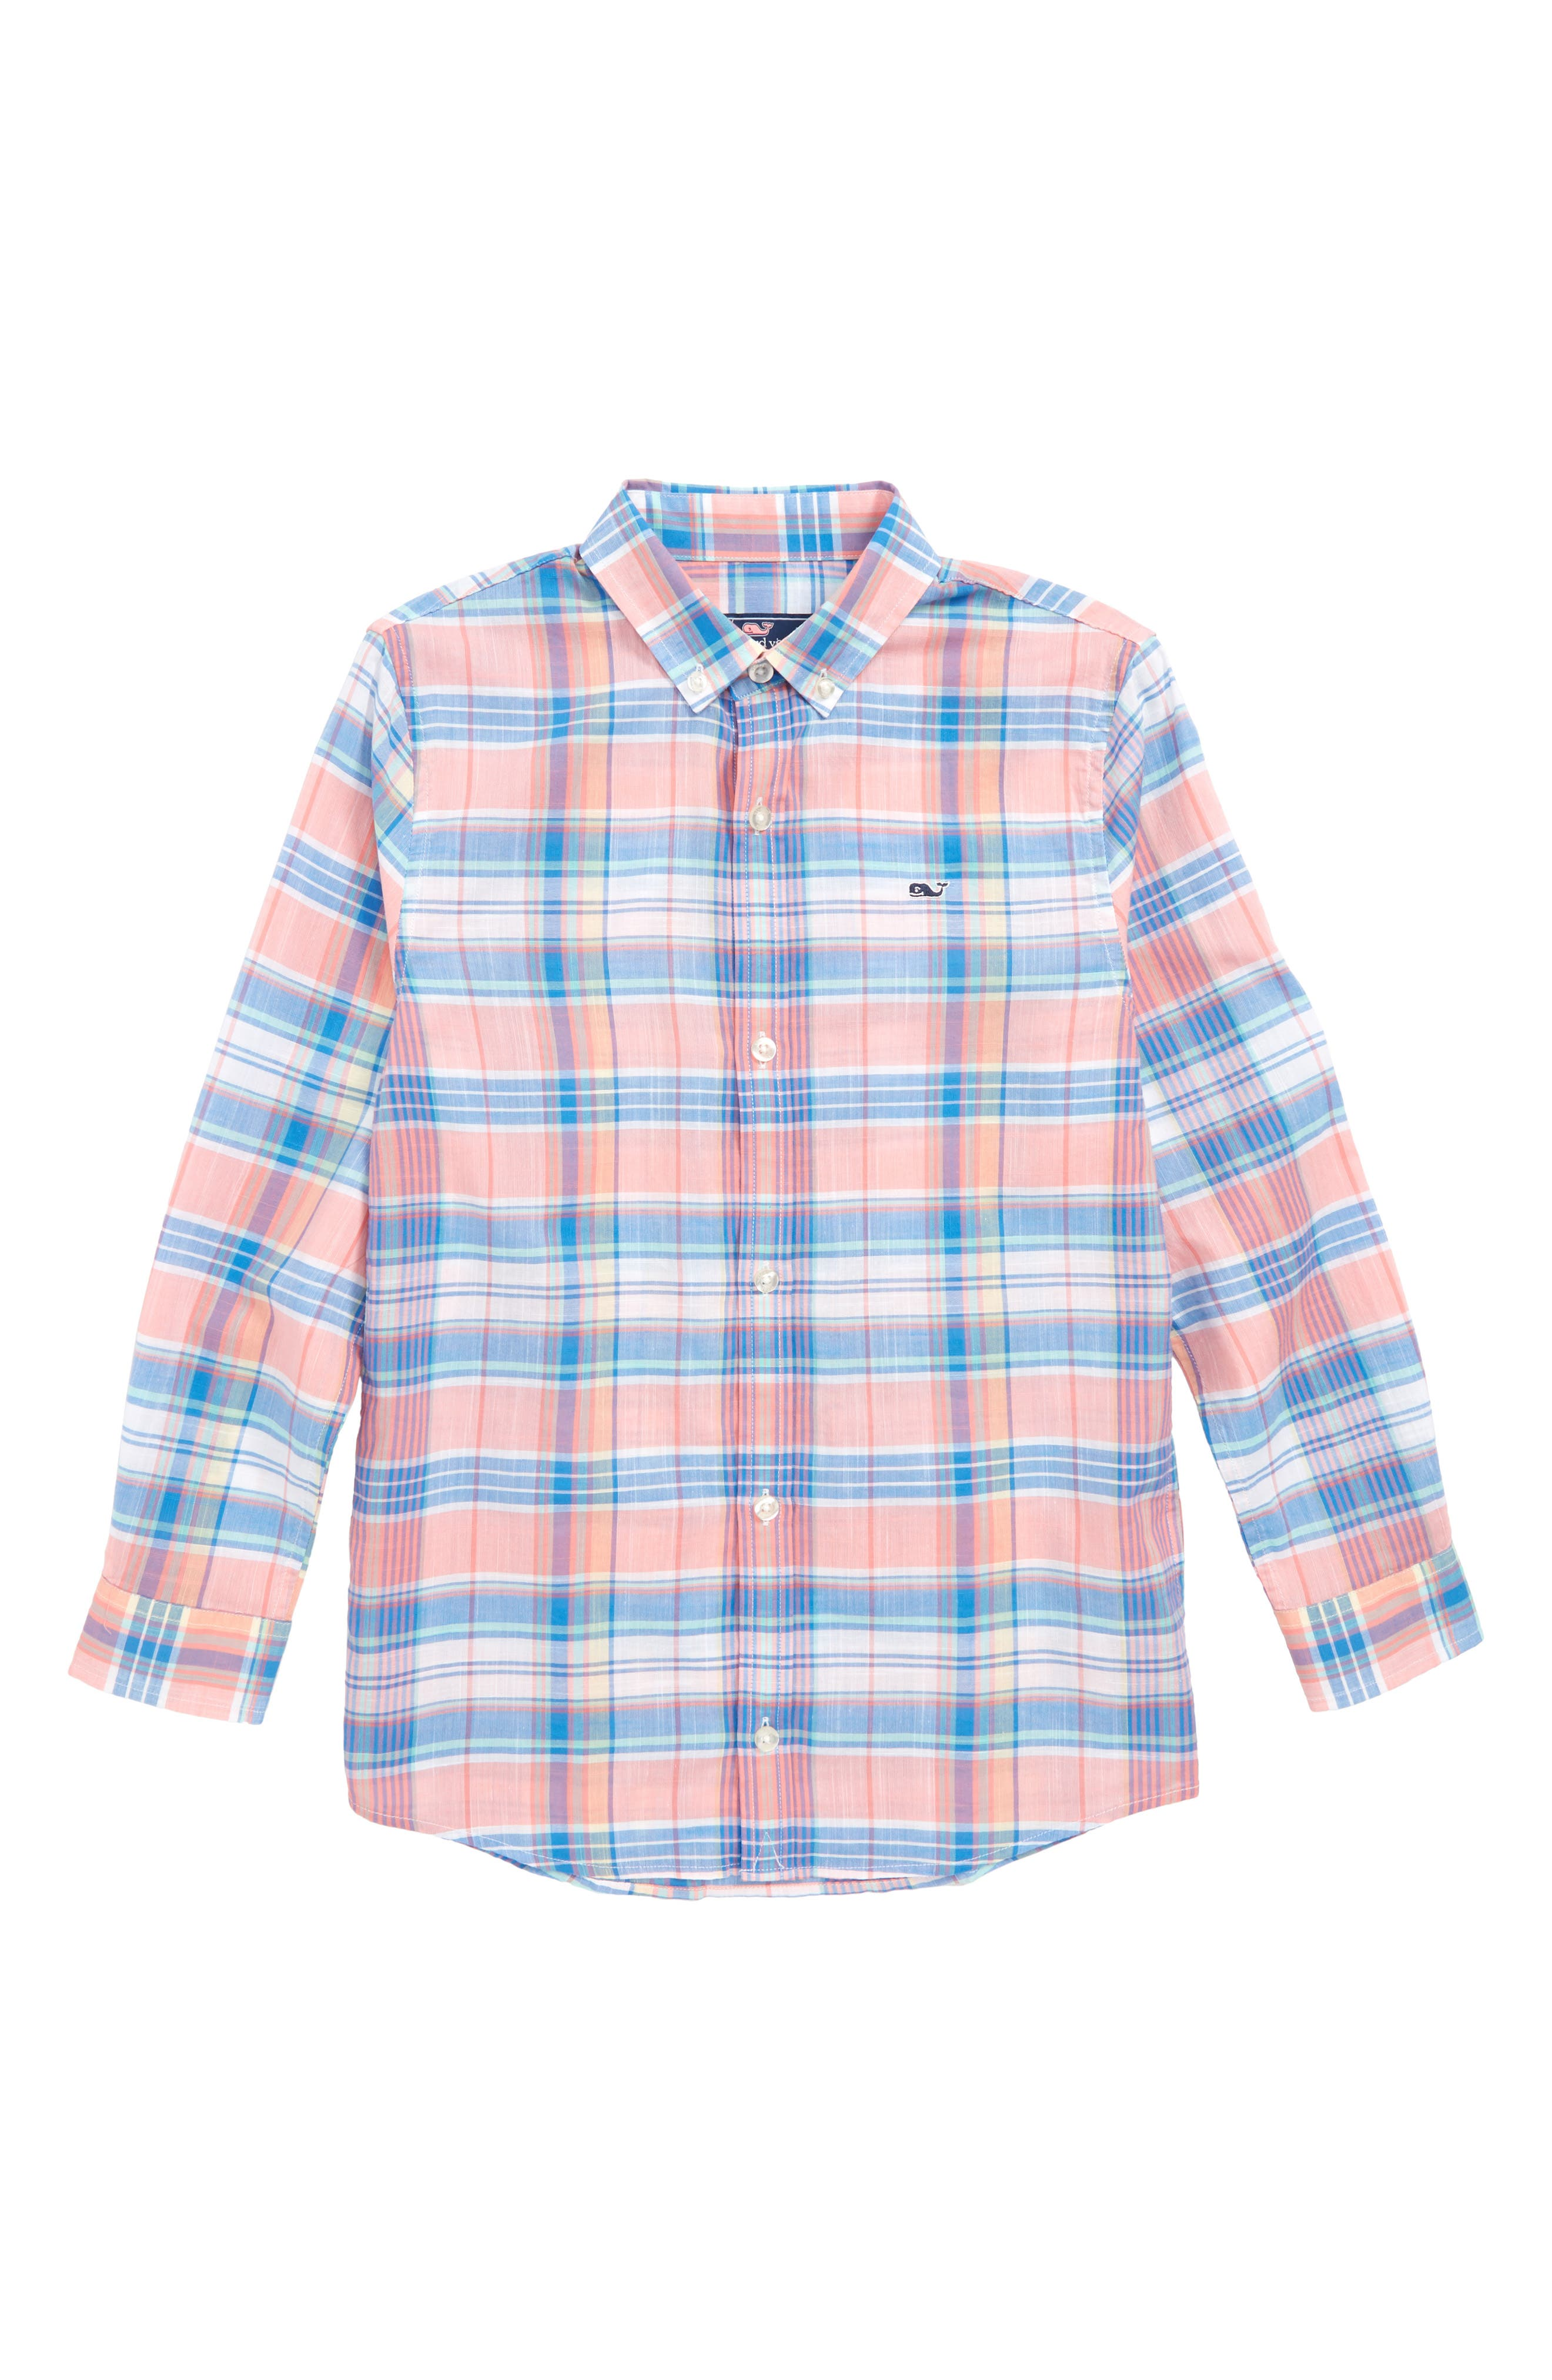 Smith Point Plaid Whale Shirt,                         Main,                         color, Washed Neon Pink